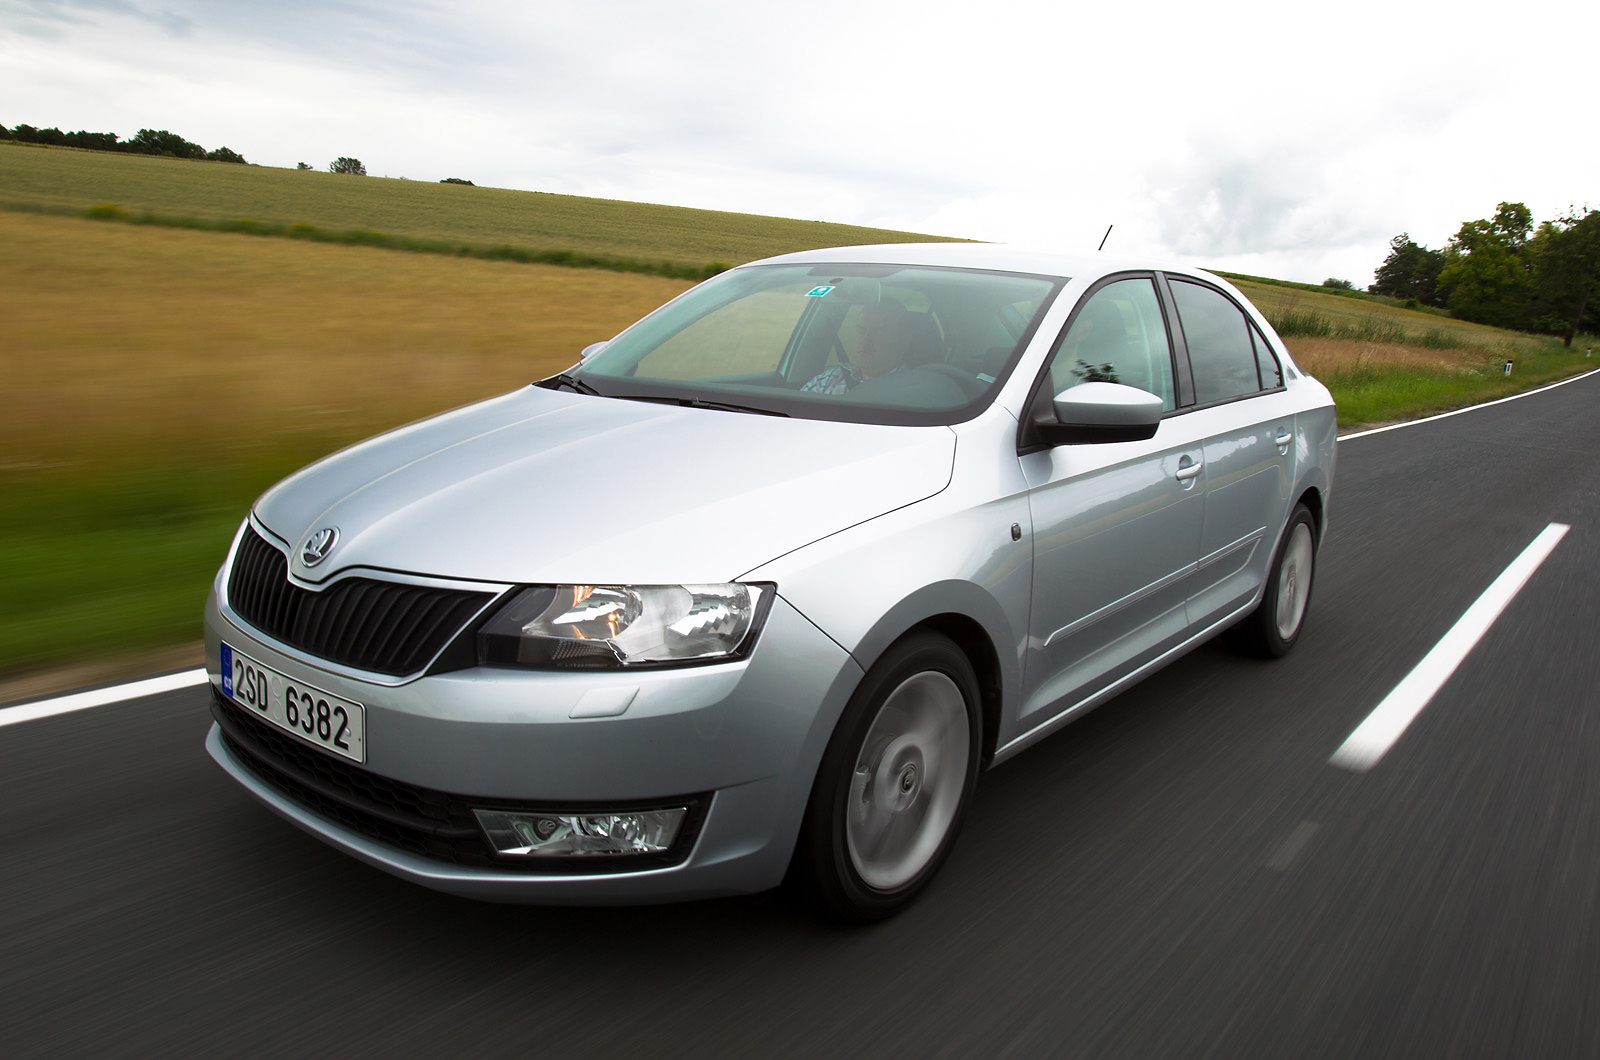 Crisp lines allow the Skoda Rapid to slip through the air quietly. With its emphasis on frugality and practicality, the Škoda Rapid is likely to be a winner with the Yummy Mummy market segment.